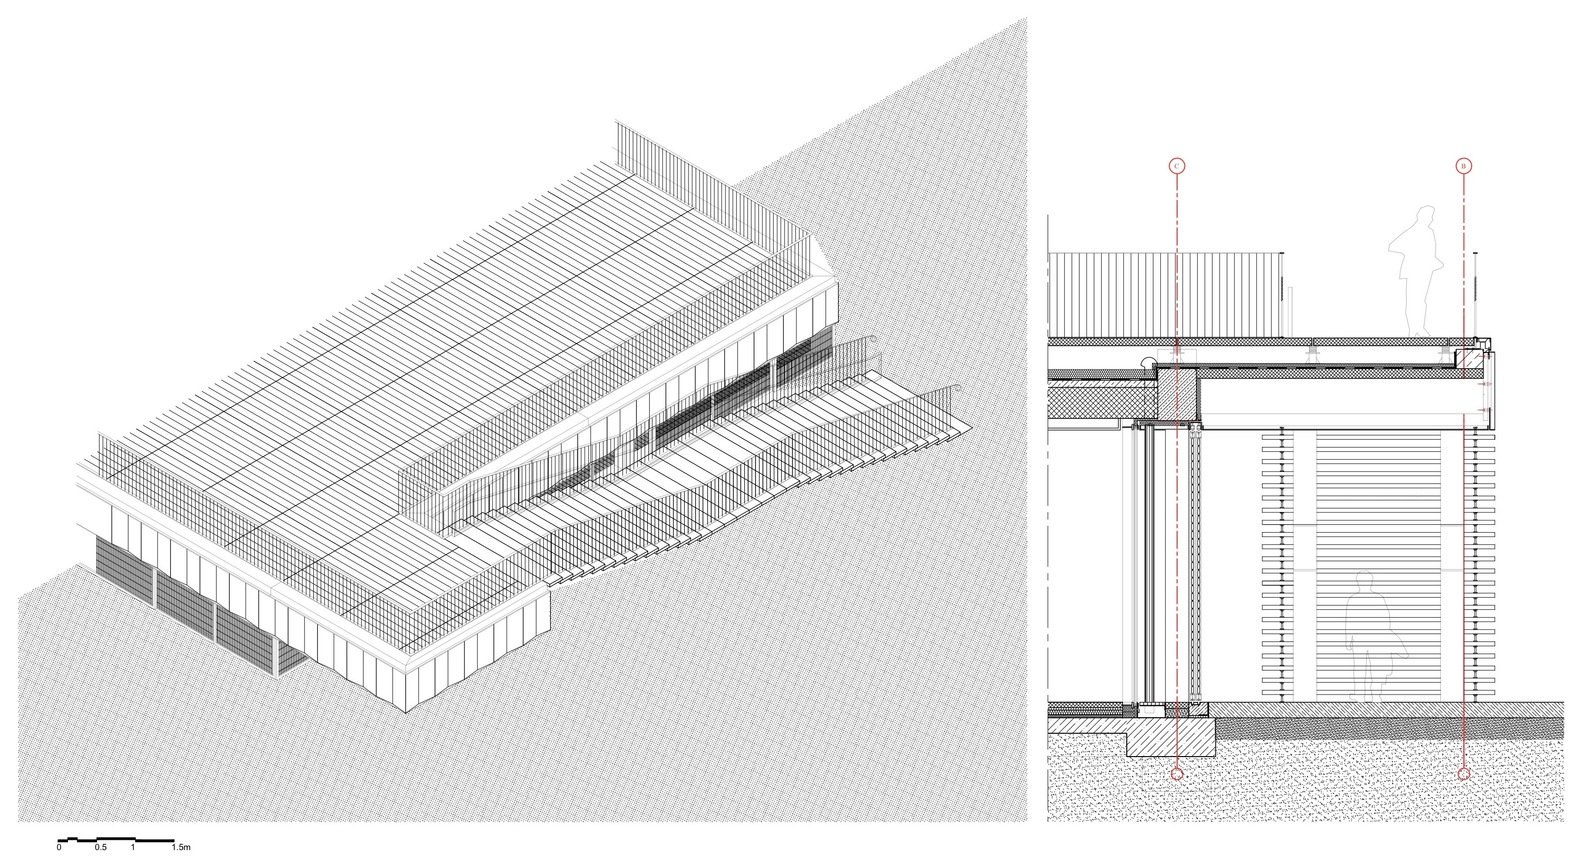 DÇtail_Escalier_des_Planches∏Dominique_Perrault_Architecte_Adagp